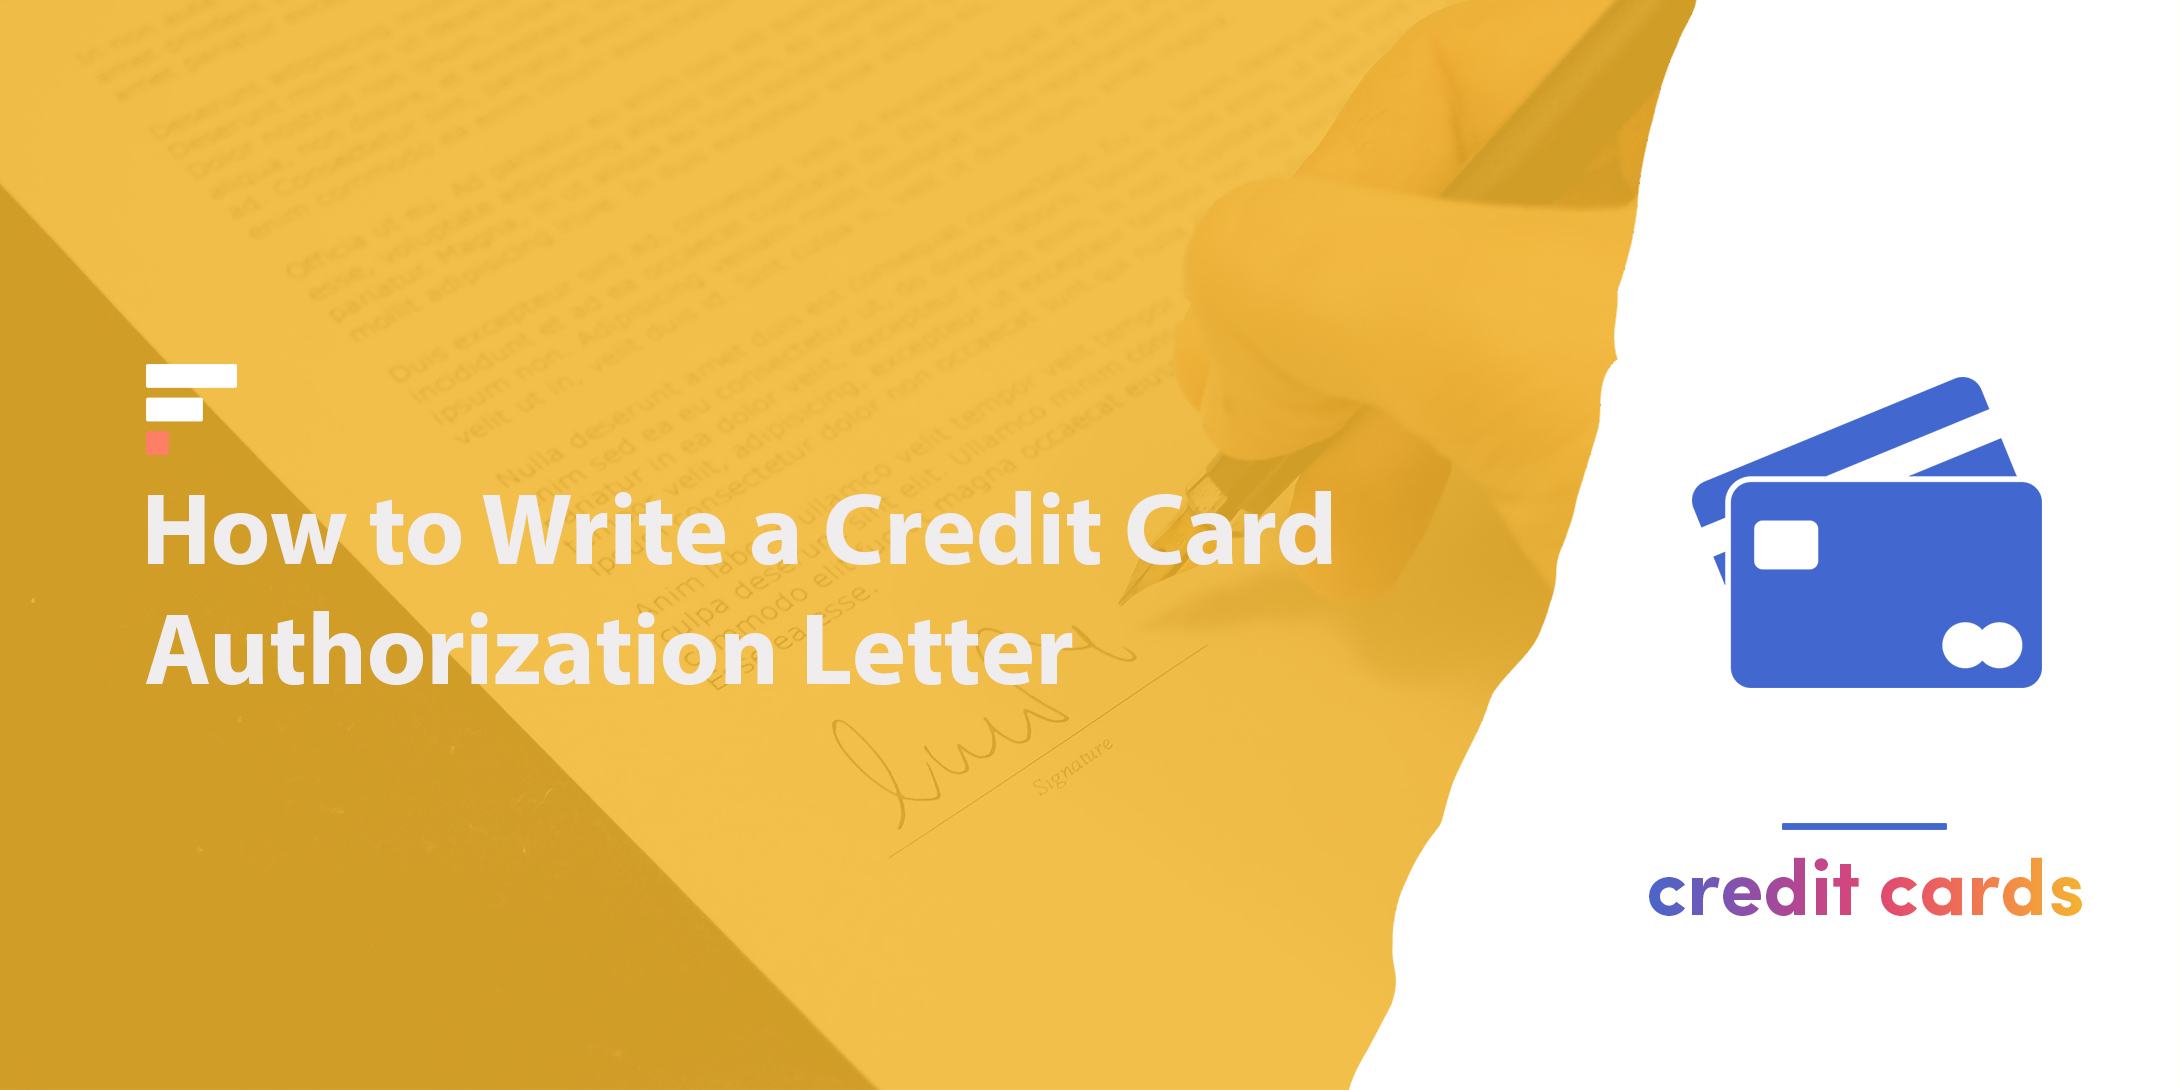 How to write a credit card authorization letter